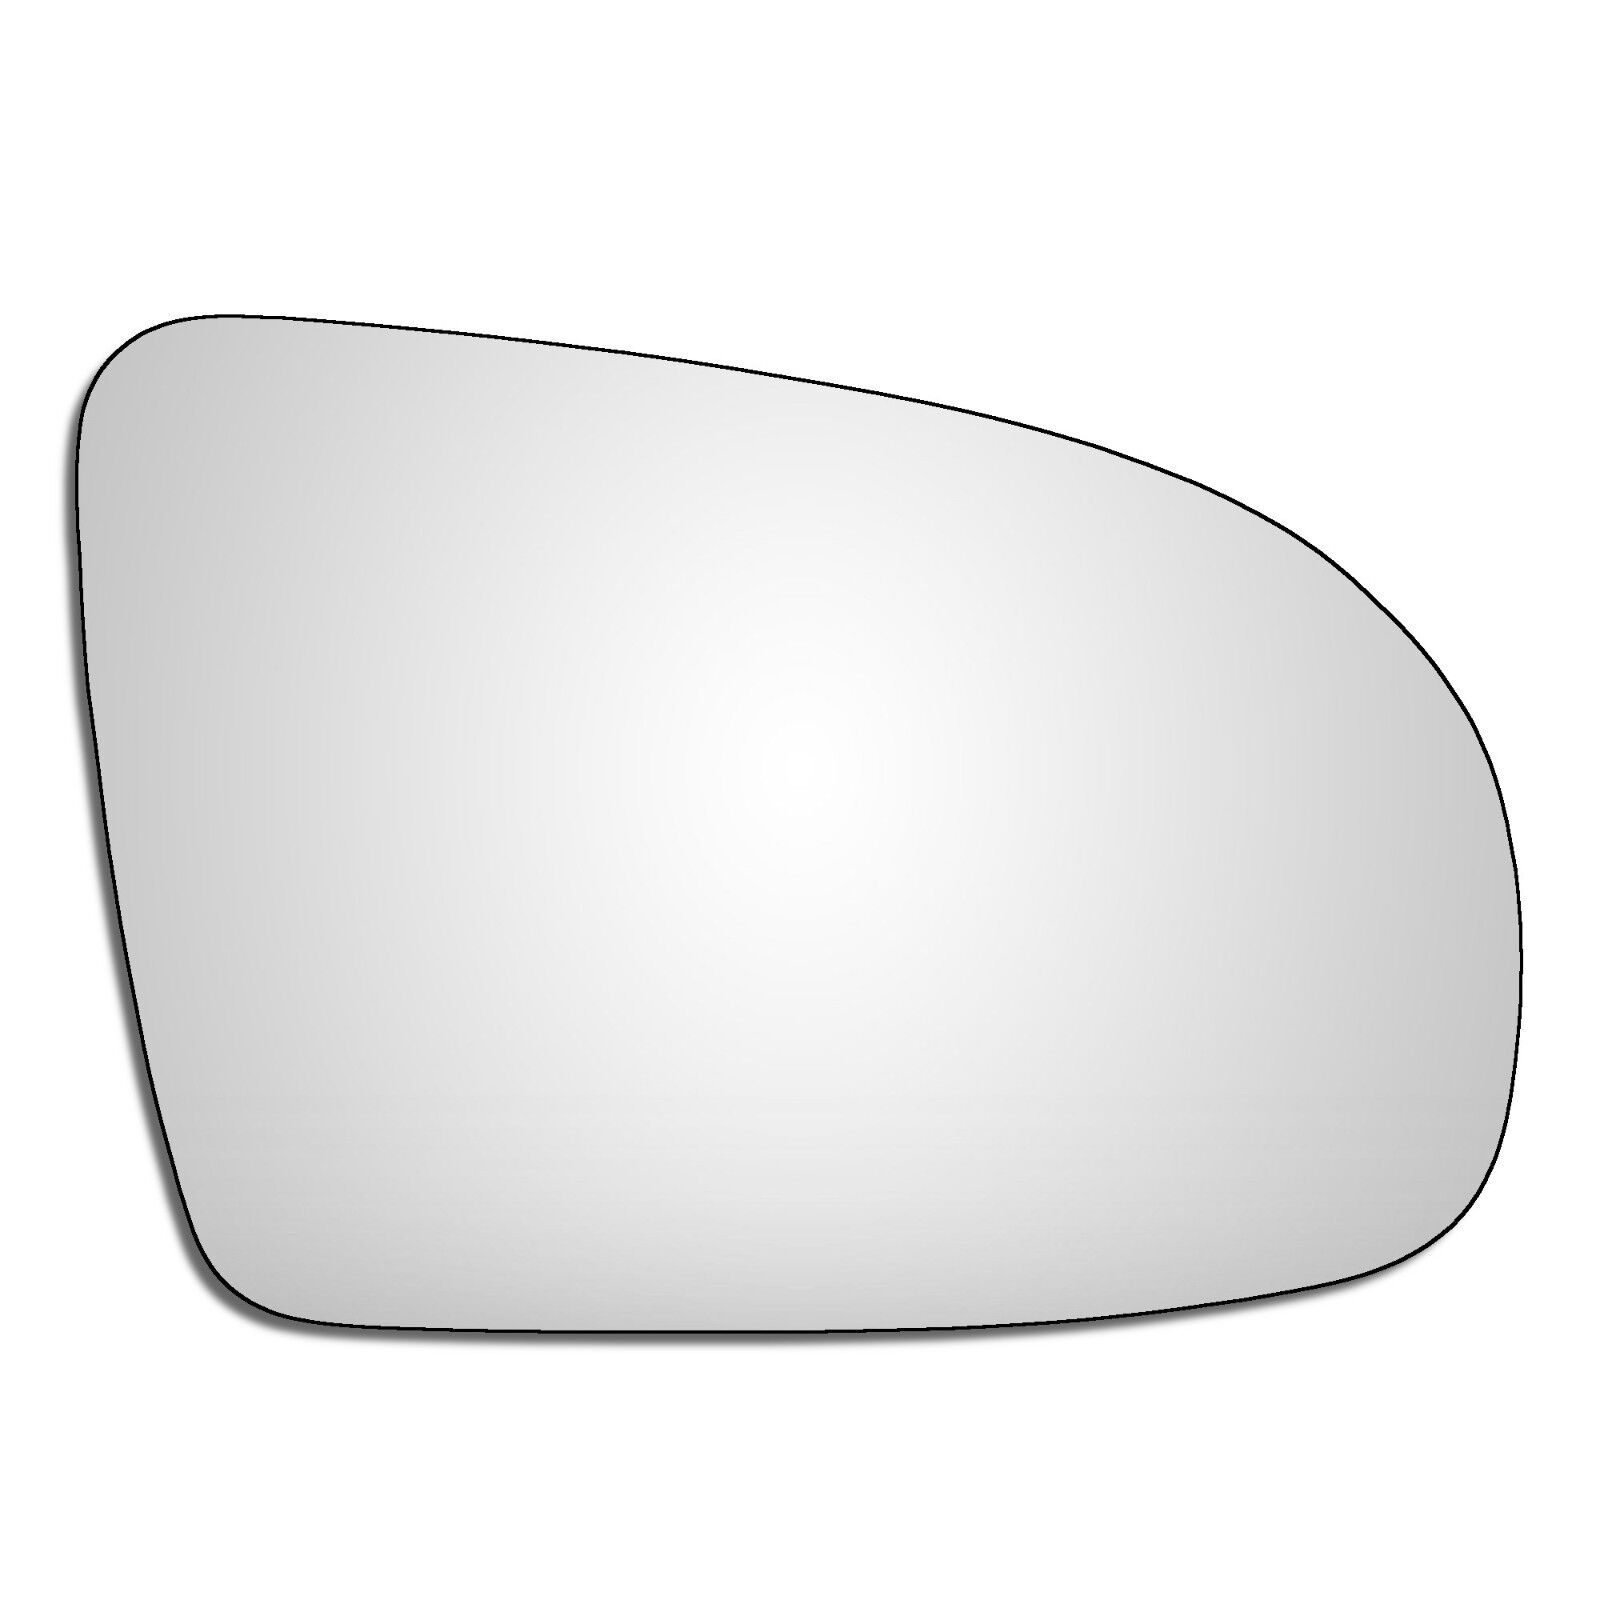 VAUXHALL CORSA - RIGHT 93 TO 00 Replacement Mirror Glass